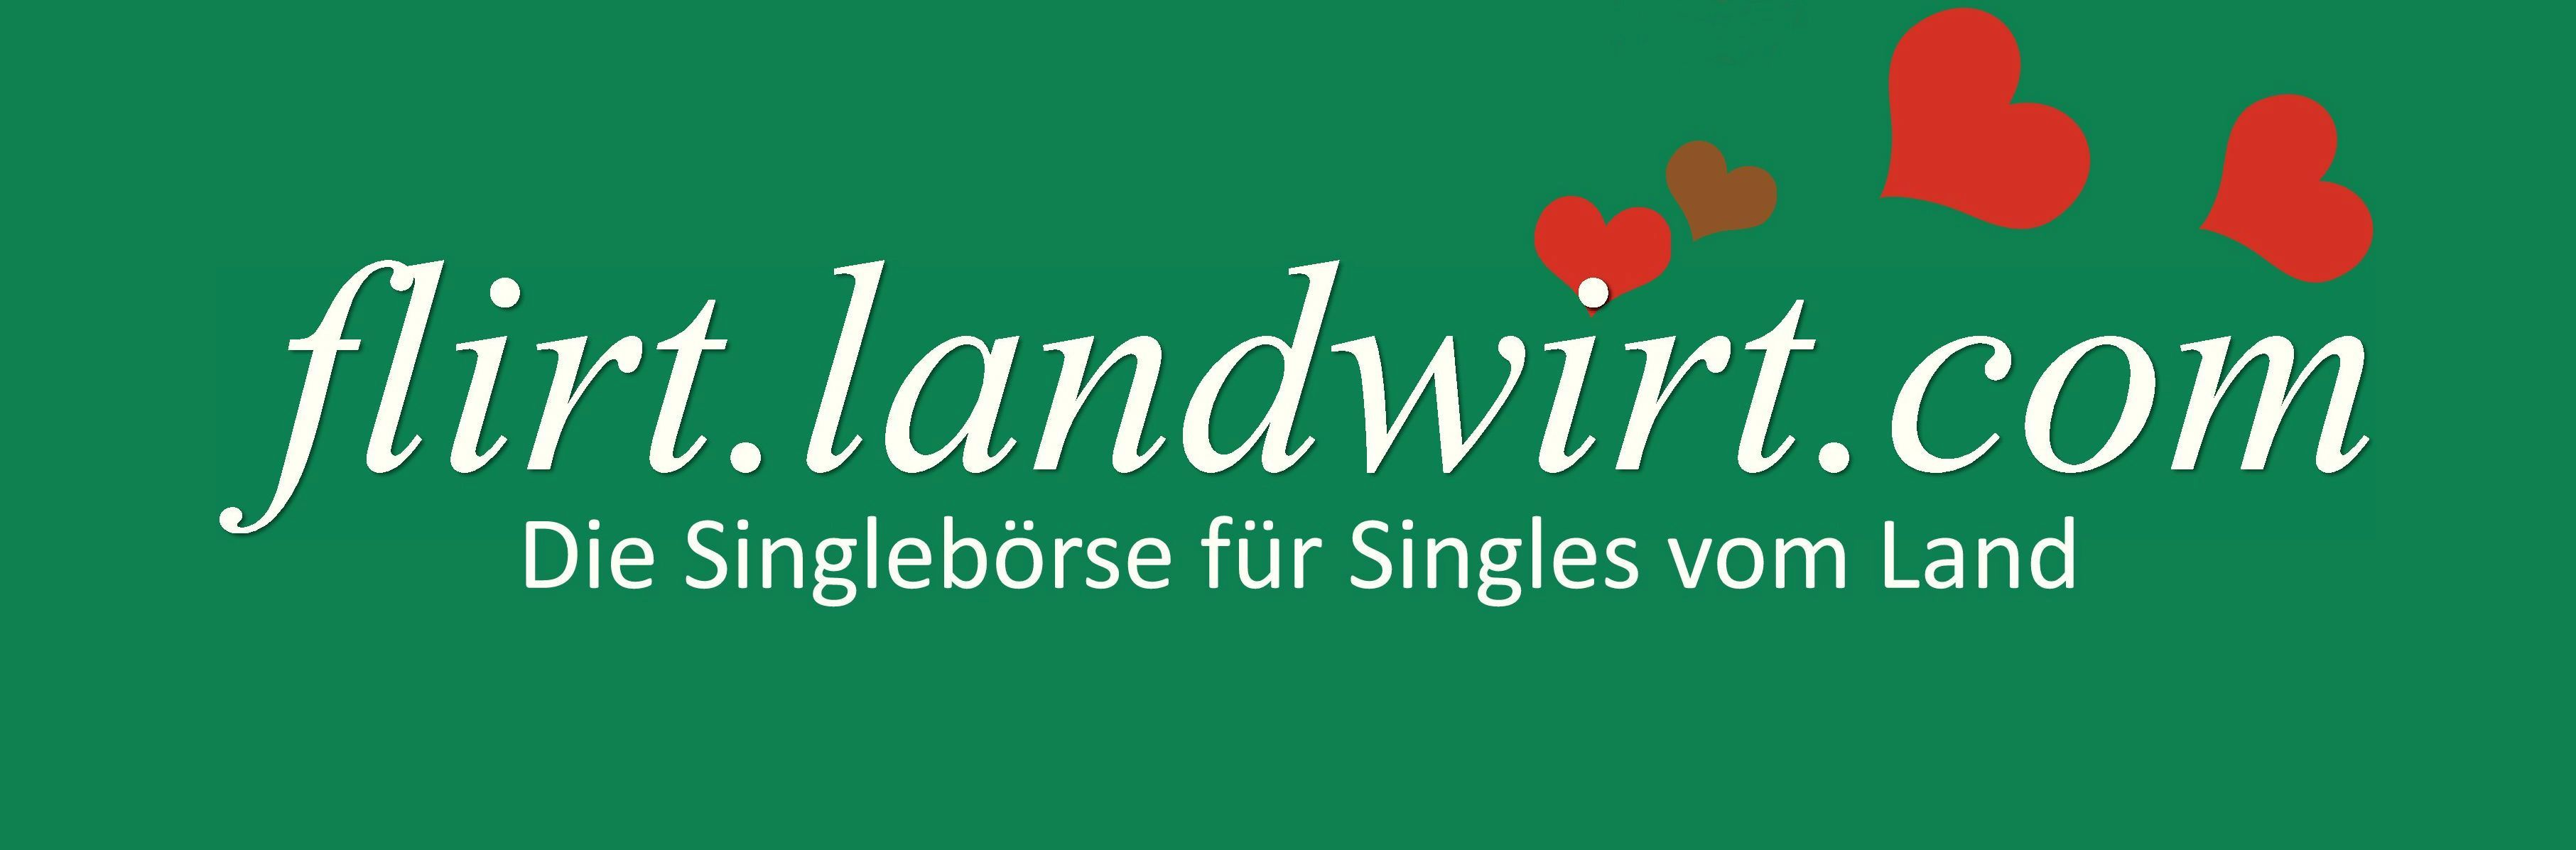 Online Dating in Werndorf bei Graz-Umgebung - flirt-hunter